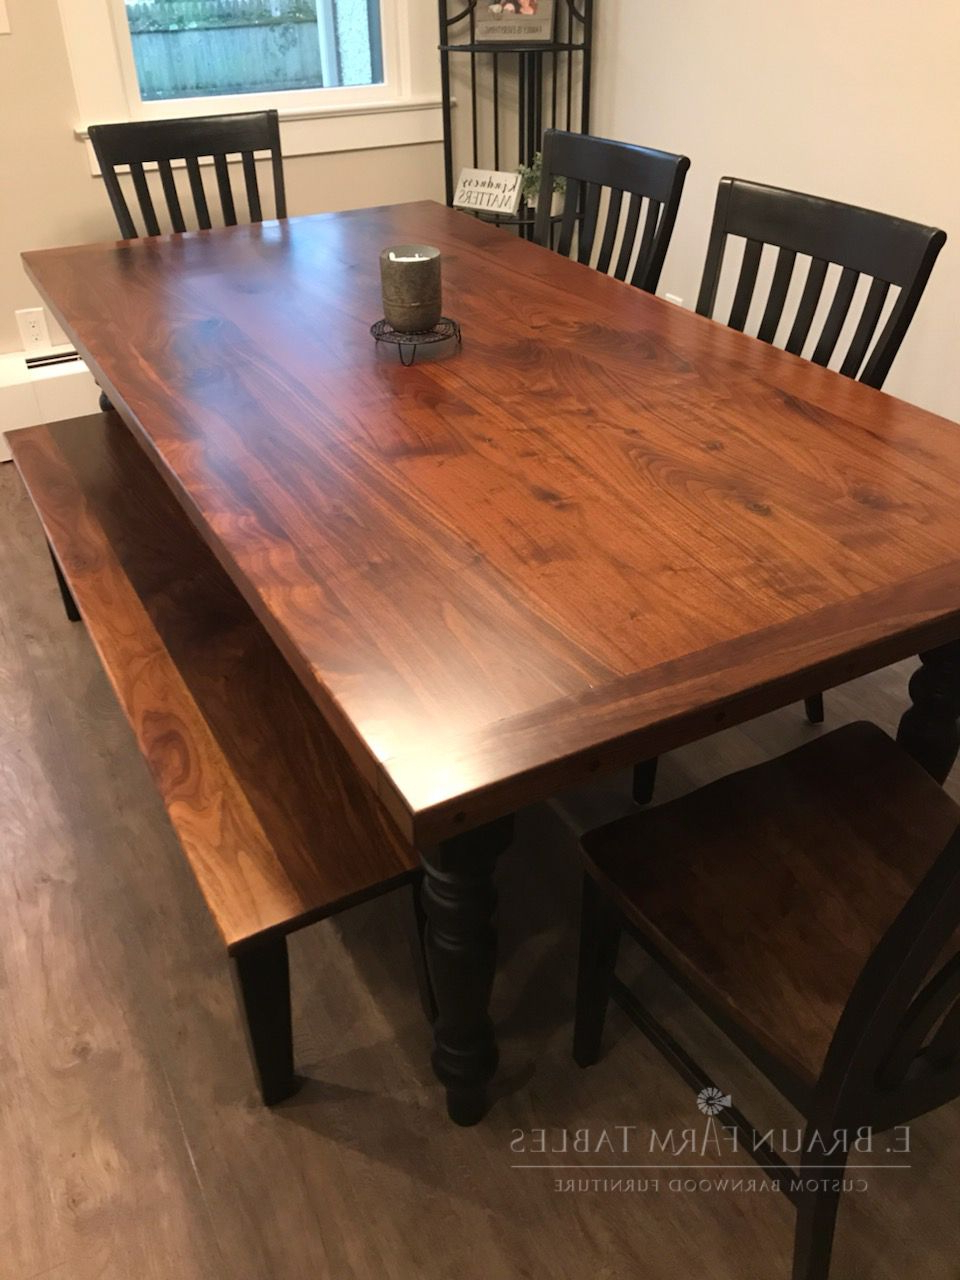 Most Current Distressed Walnut And Black Finish Wood Modern Country Dining Tables Regarding Custom Farmhouse Table – Gorgeous Black Walnut Table Top And (View 6 of 25)